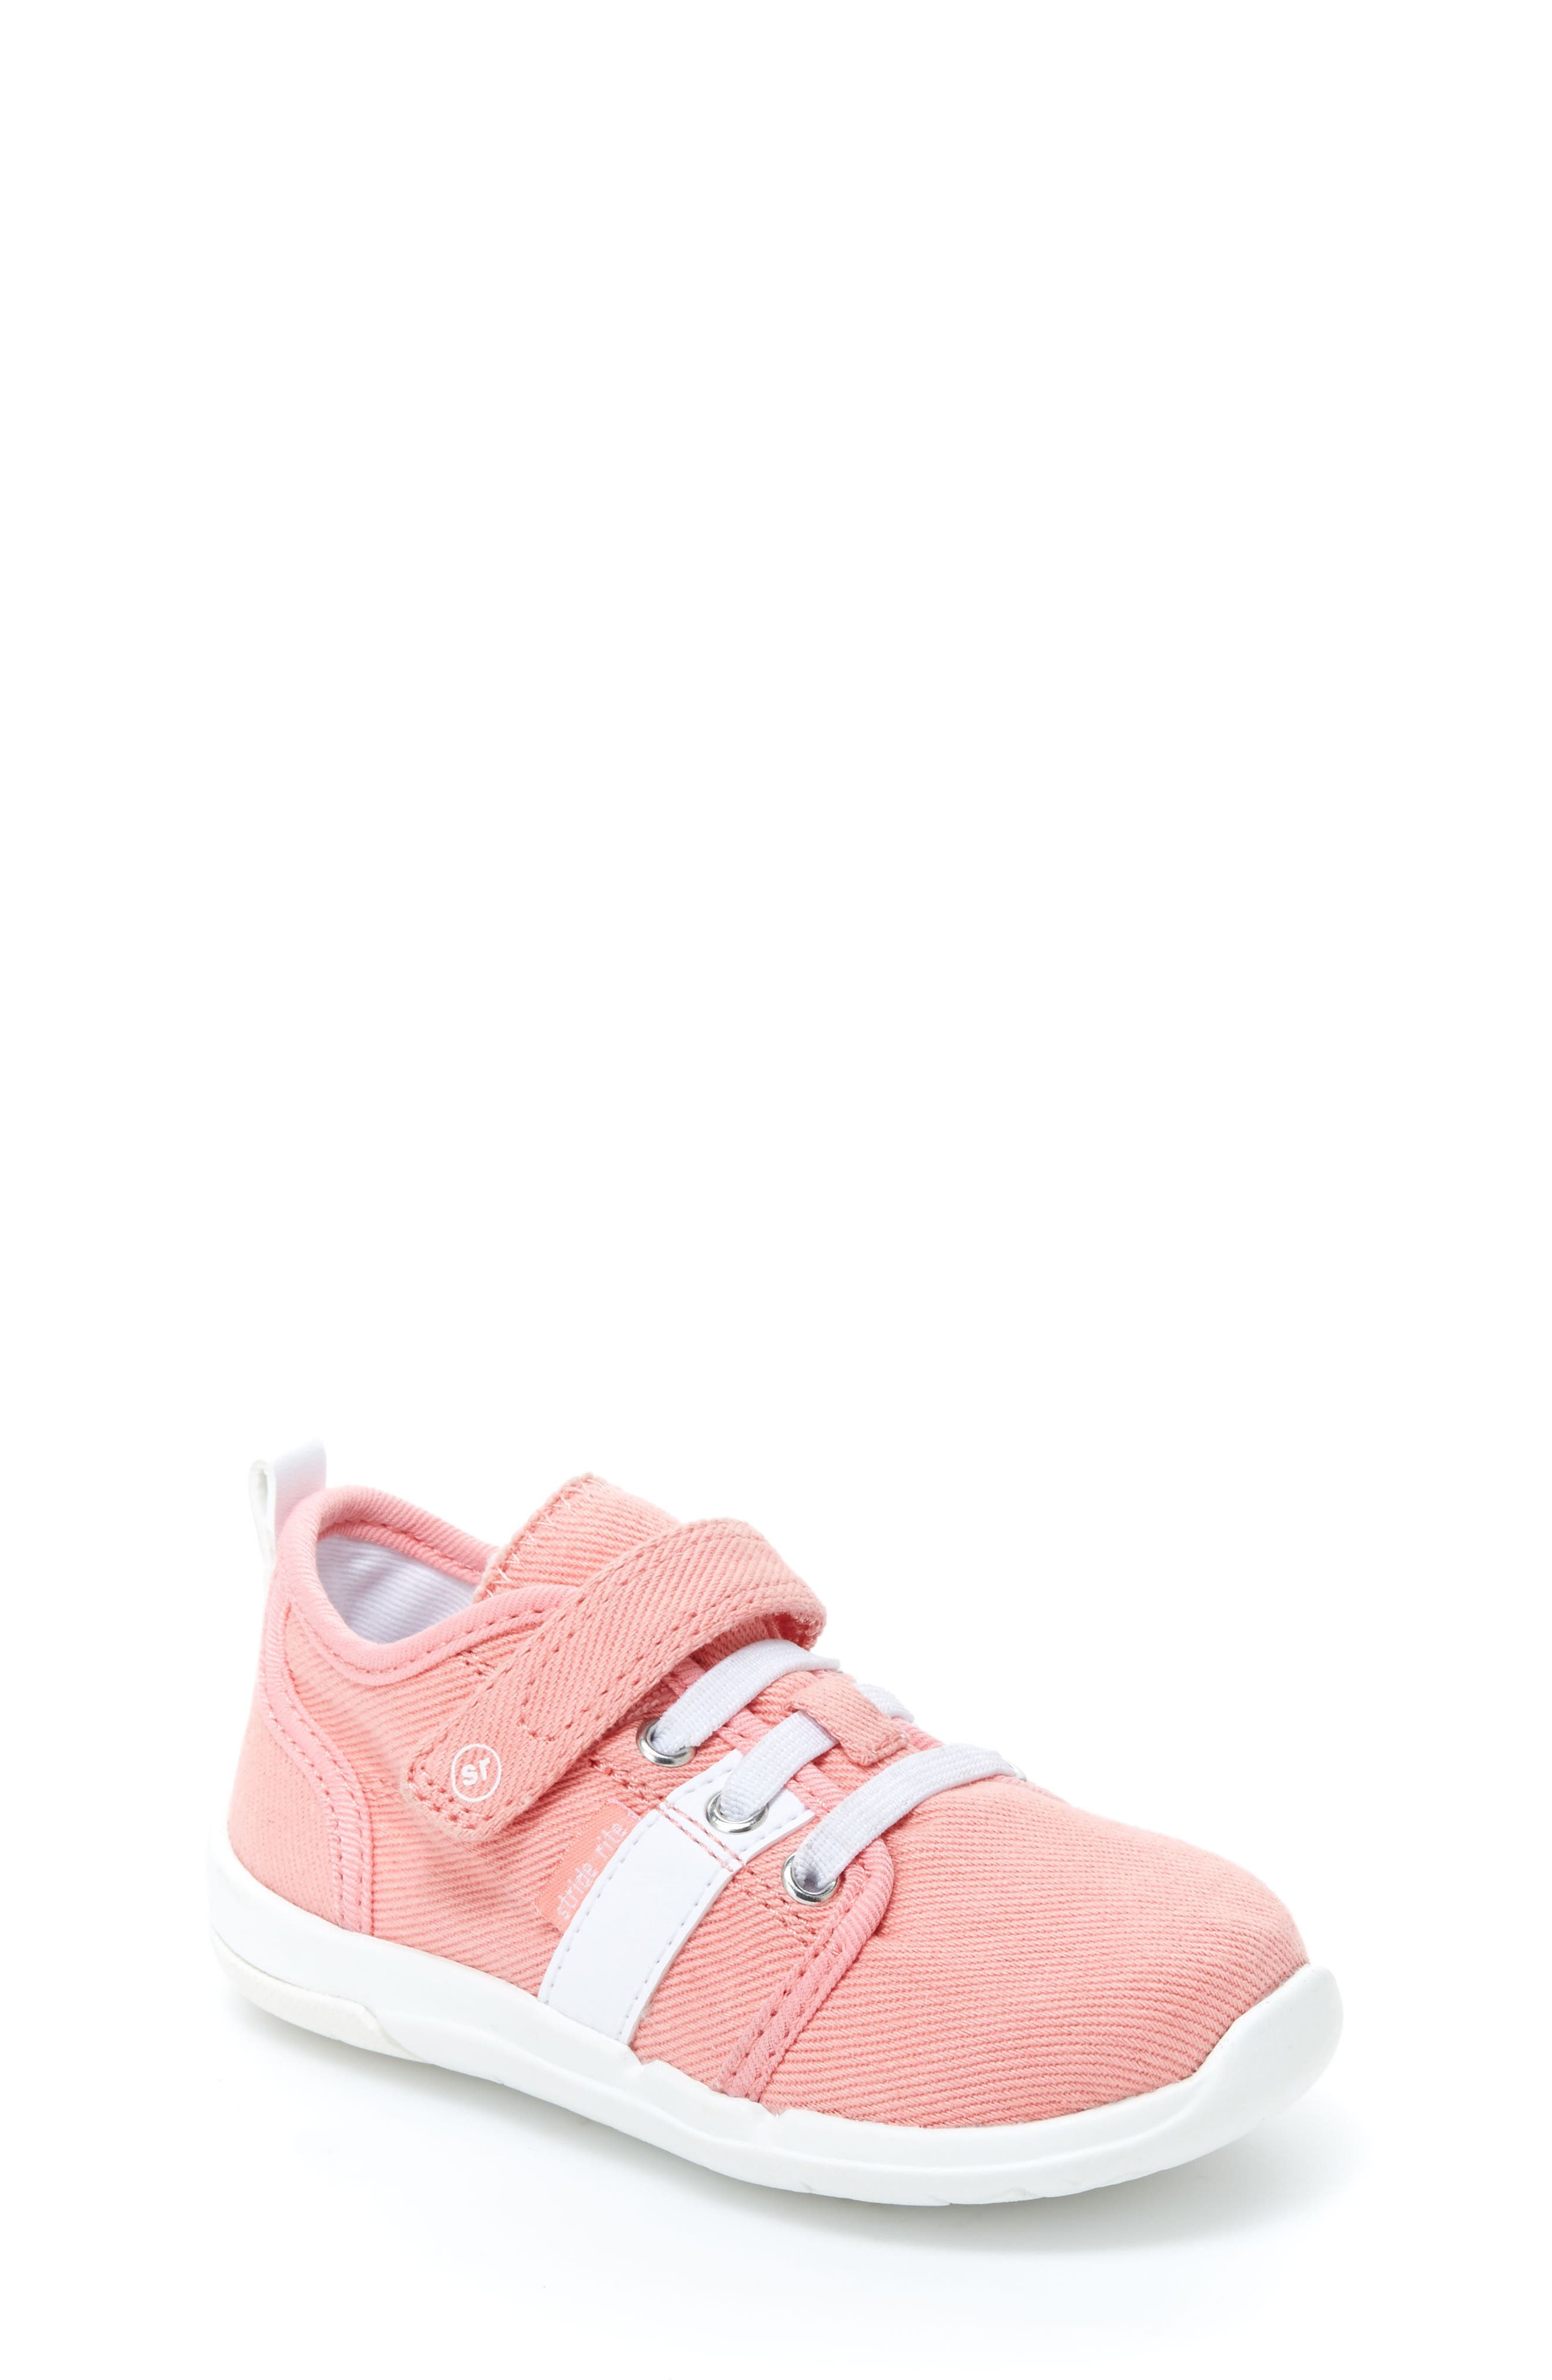 Dixon Sneaker,                         Main,                         color, Pink